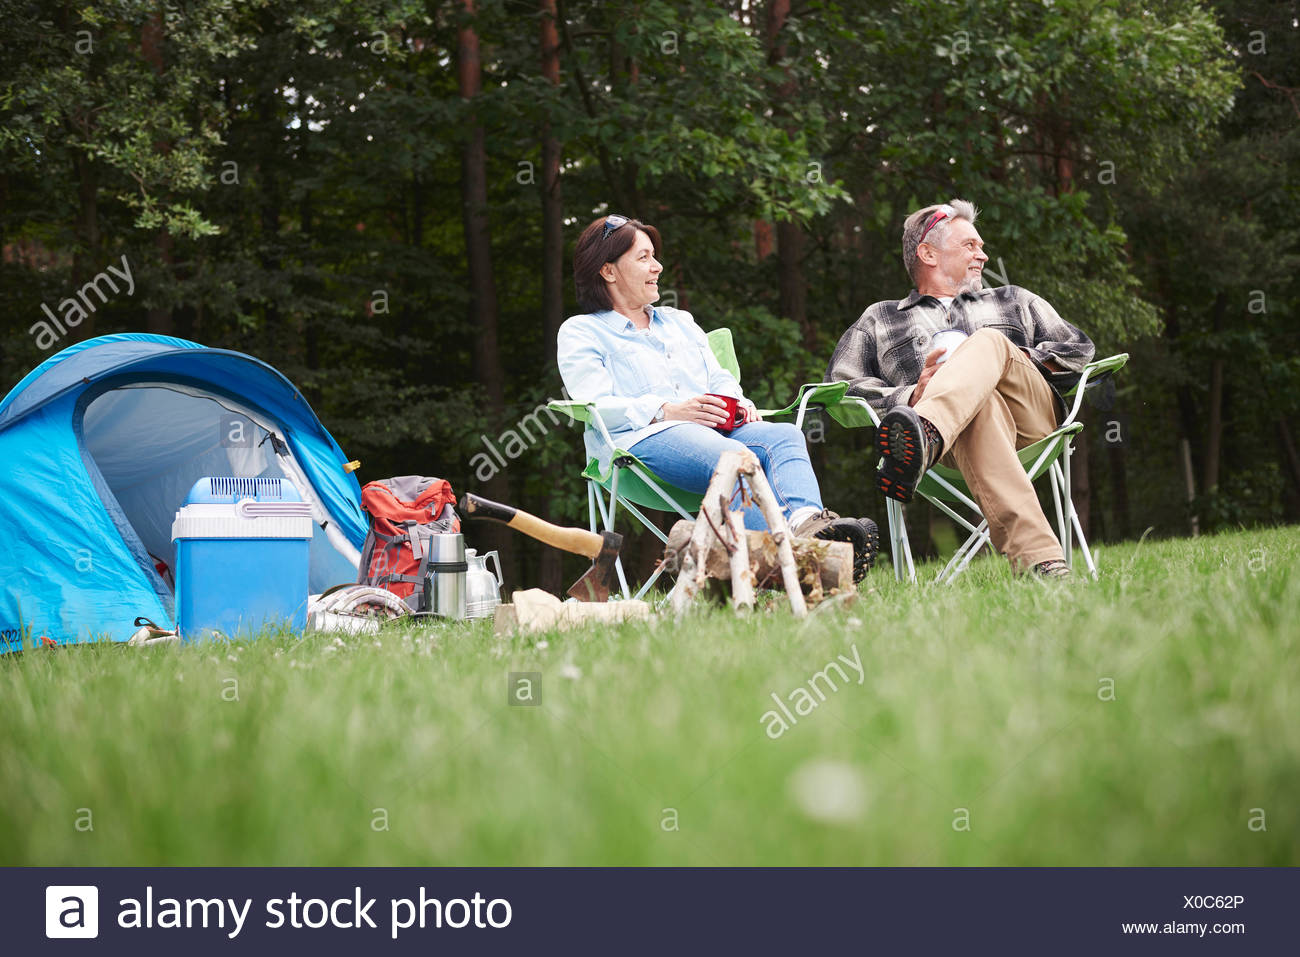 Mature couple sitting in camping chairs beside tent, low angle view - Stock Image